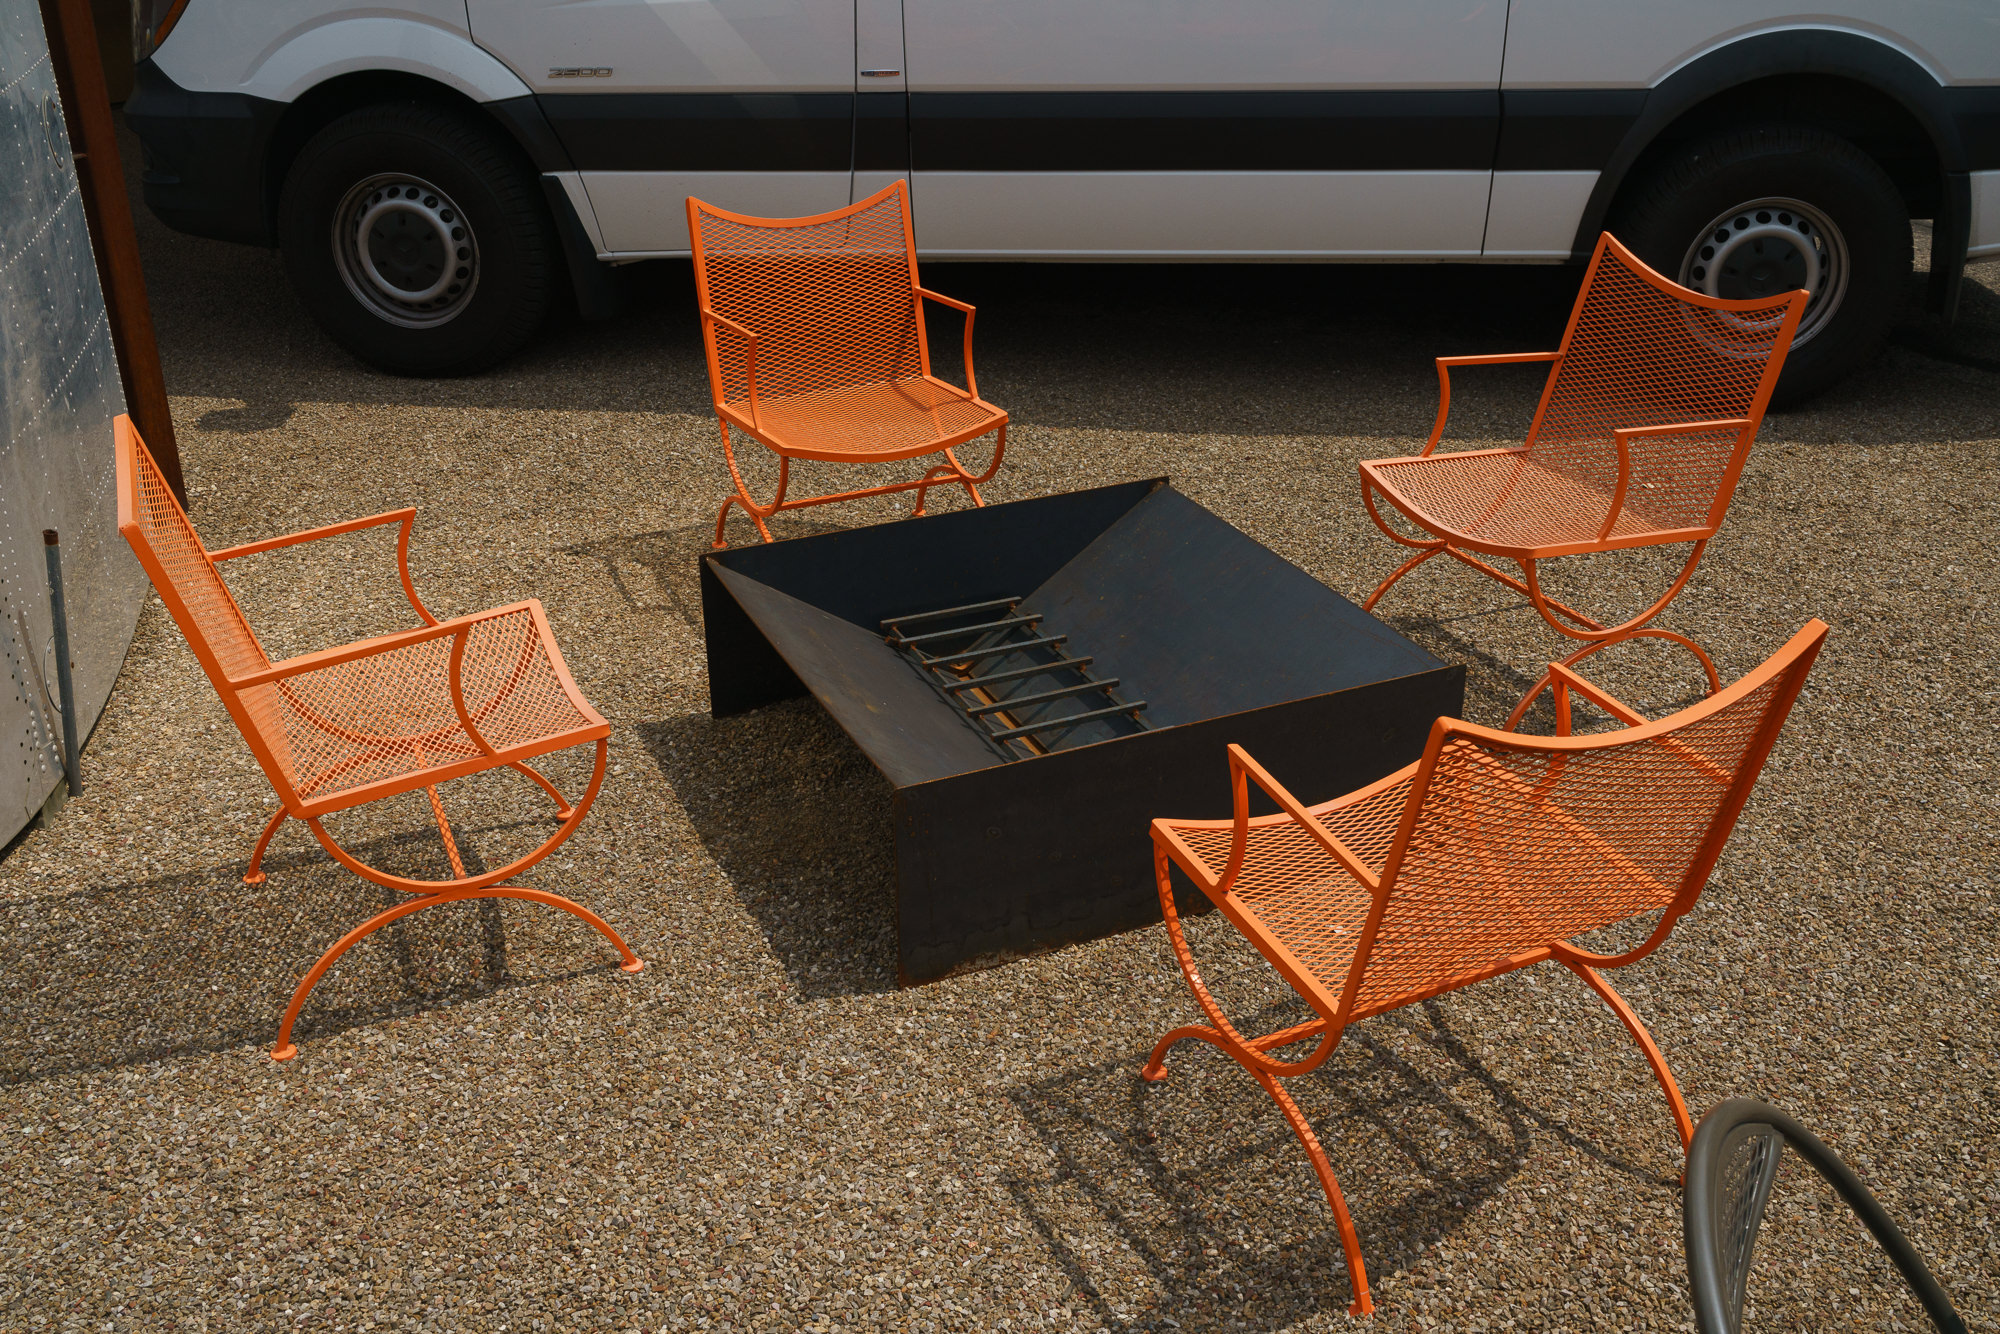 Expanded Steel Outdoor Armchairs - $400